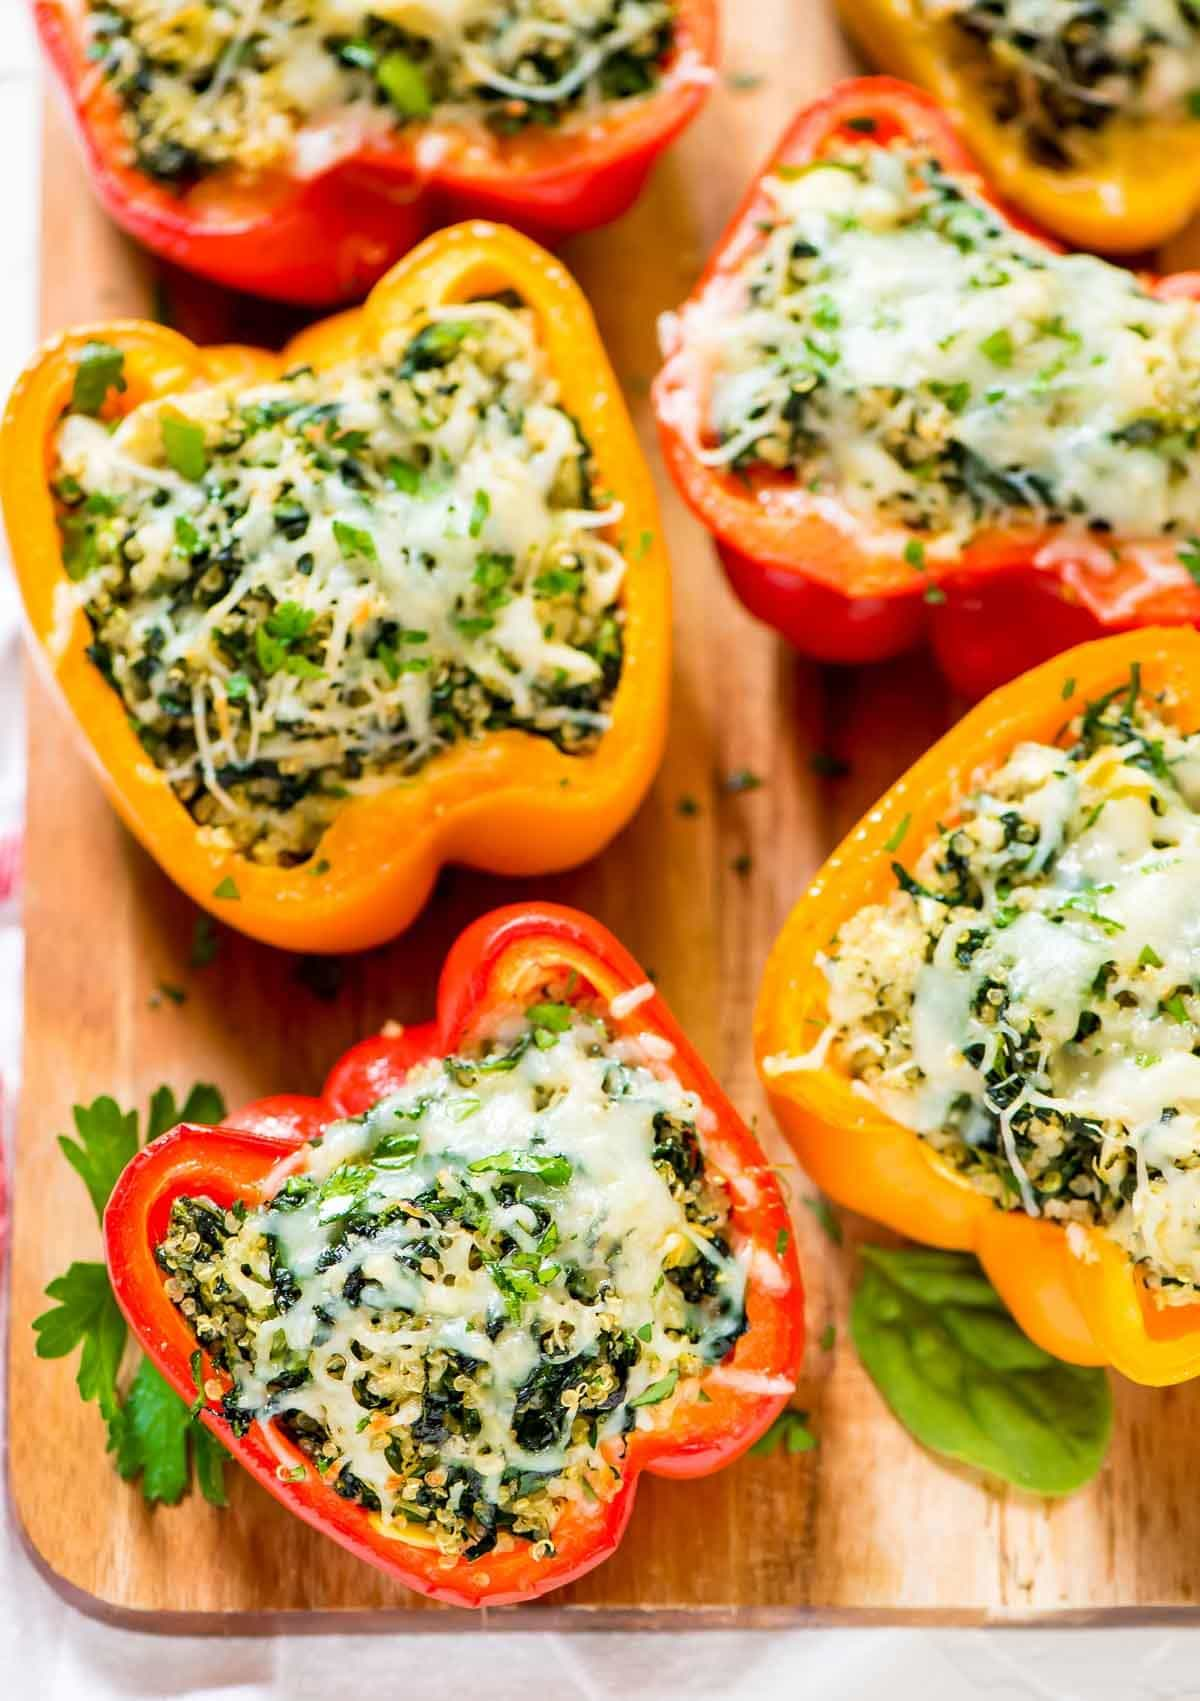 Spinach Artichoke Quinoa Stuffed Bell Peppers – An easy to make, healthy, balanced meal! @wellplated